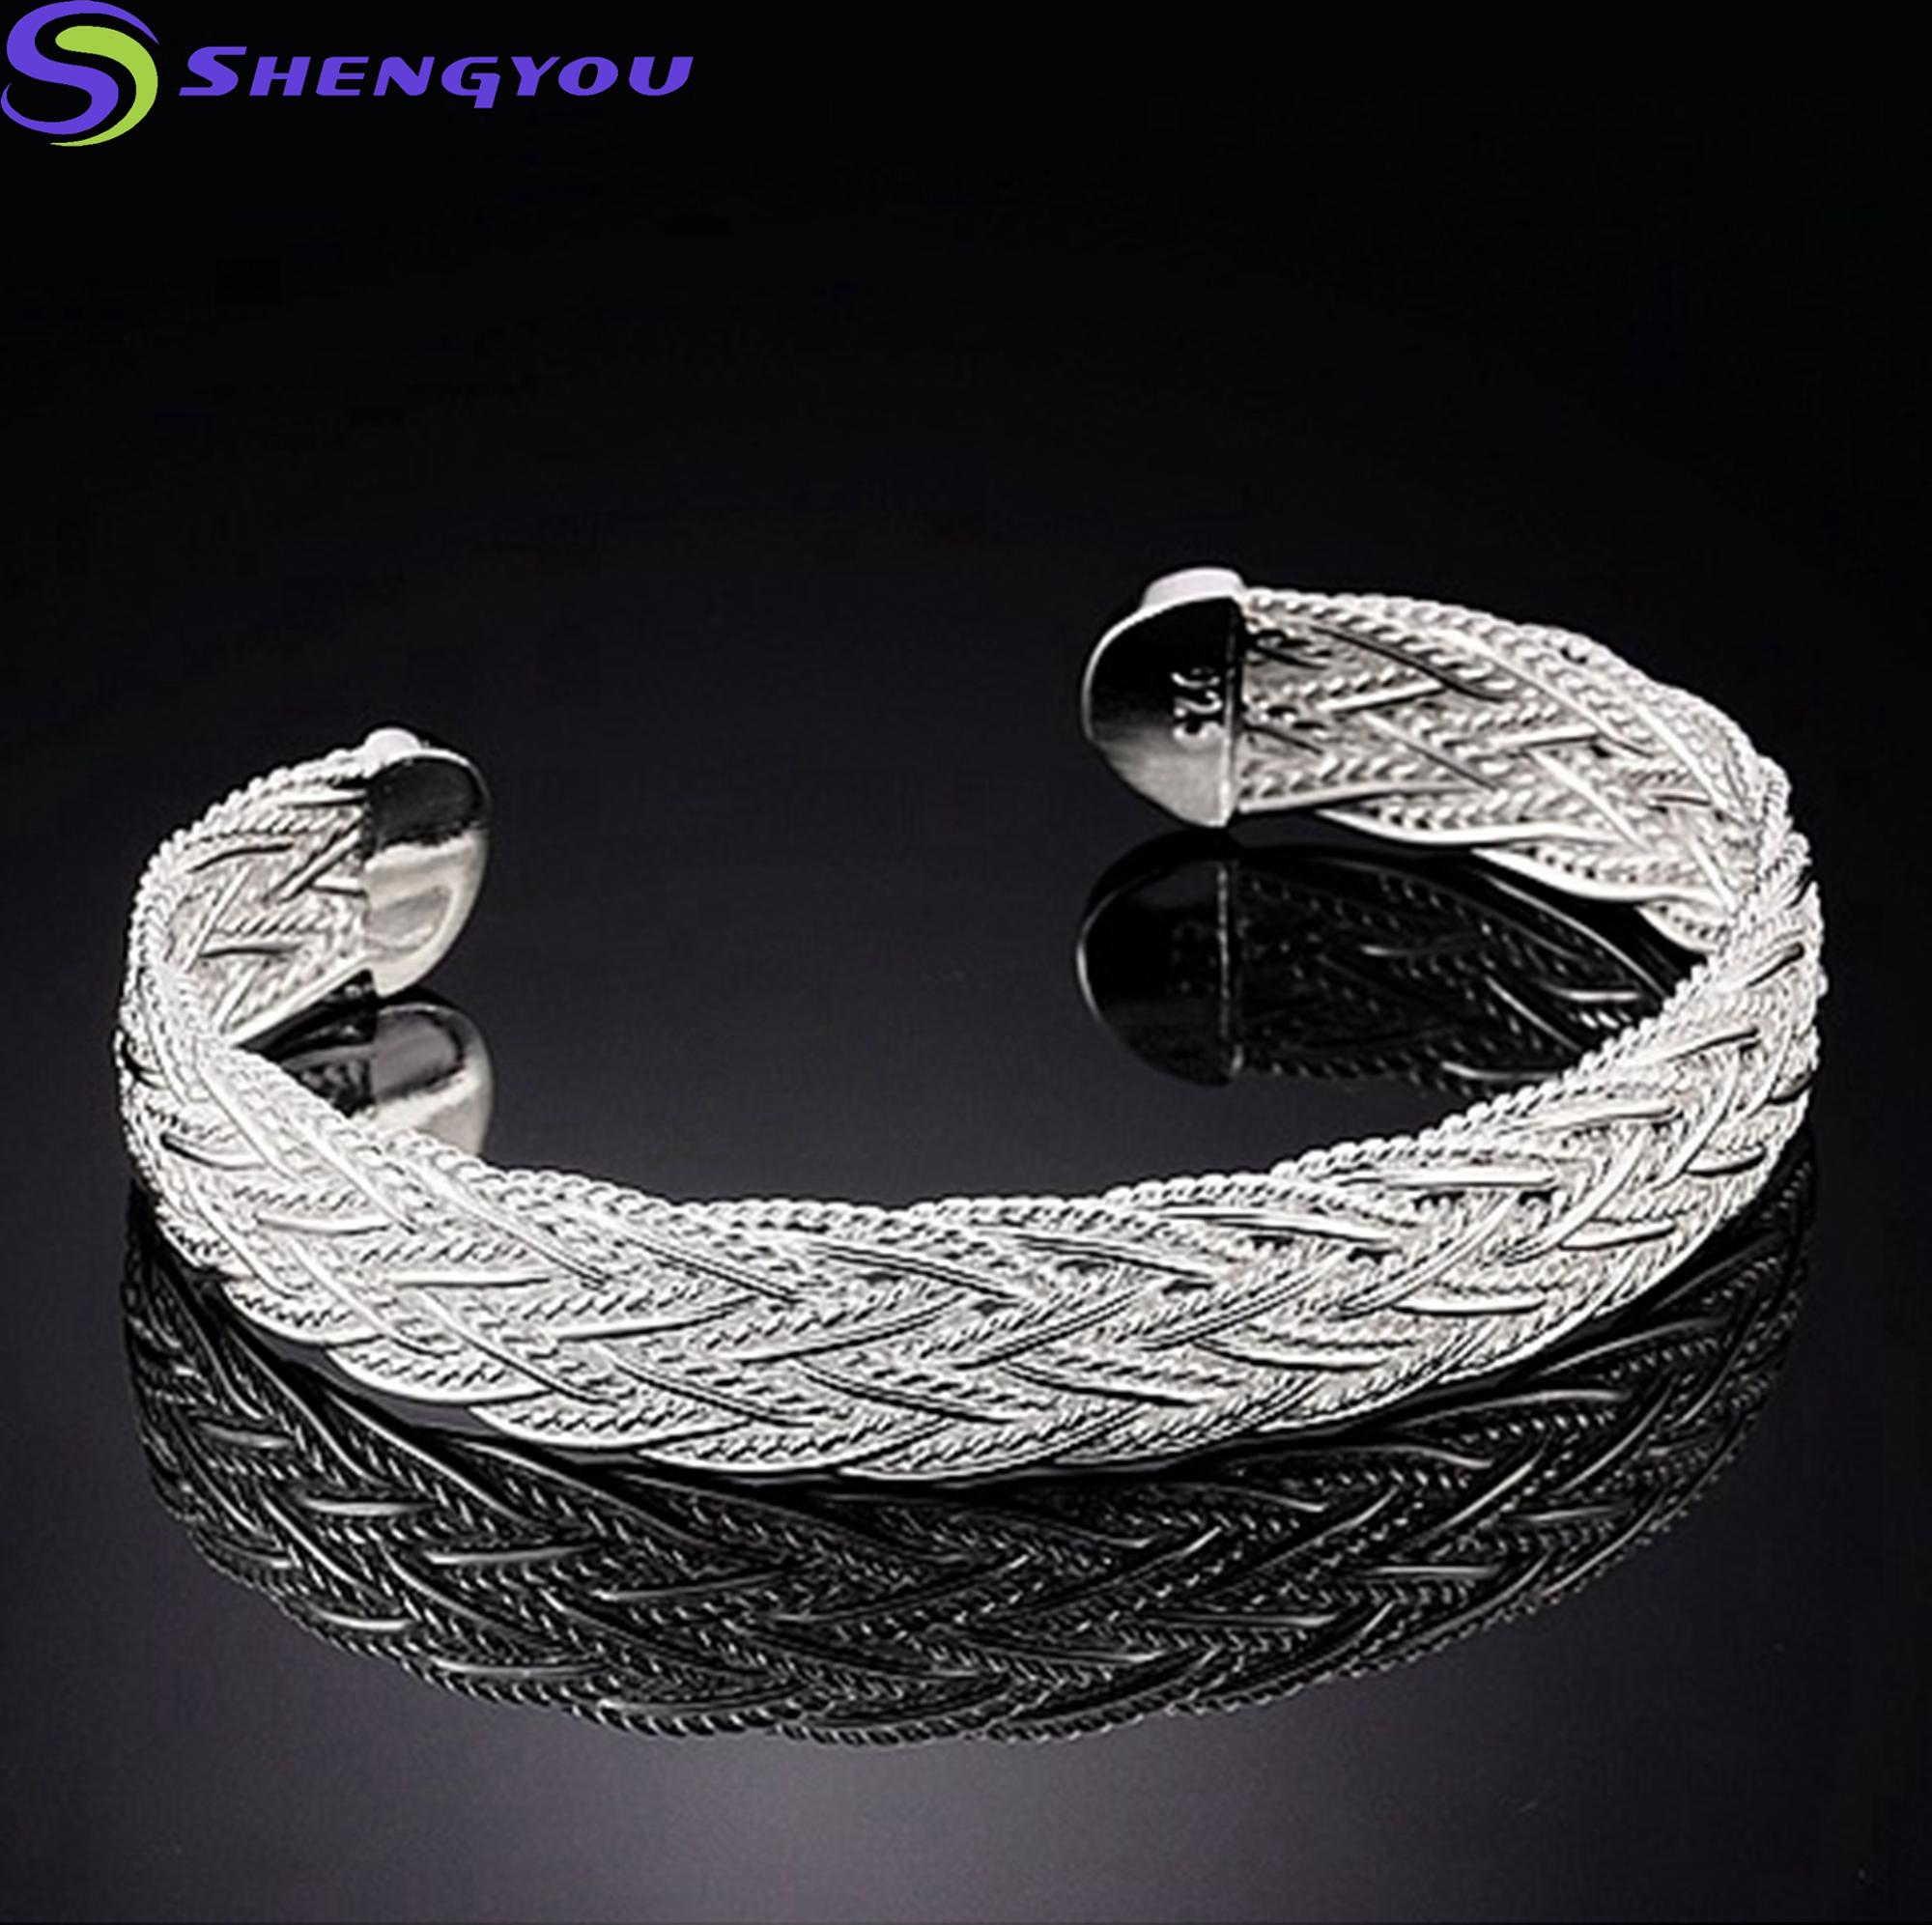 Continued Hot Rope Jewelry Cheap Custom Rope Pure Silver Bracelet